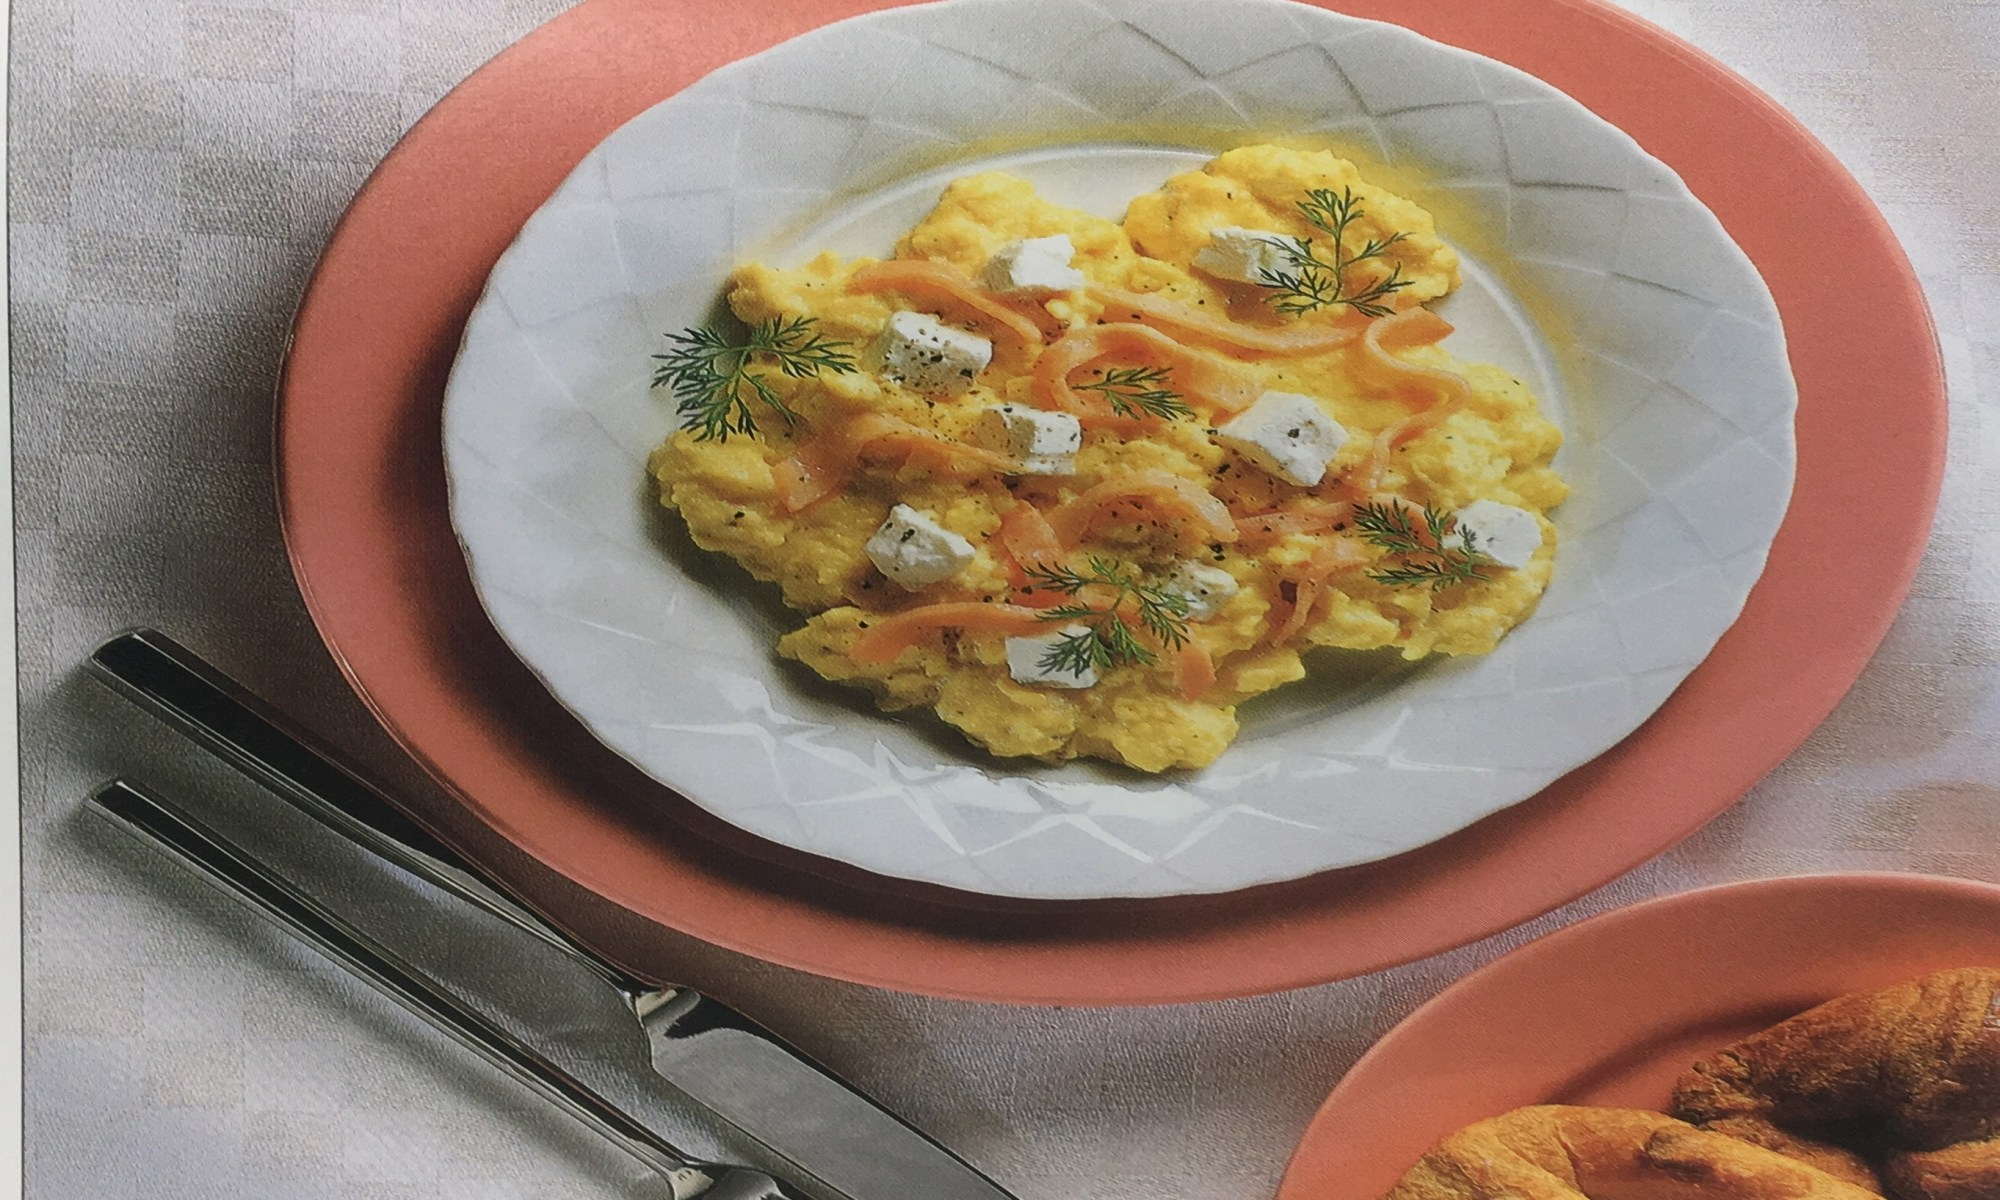 Eggs with Lox